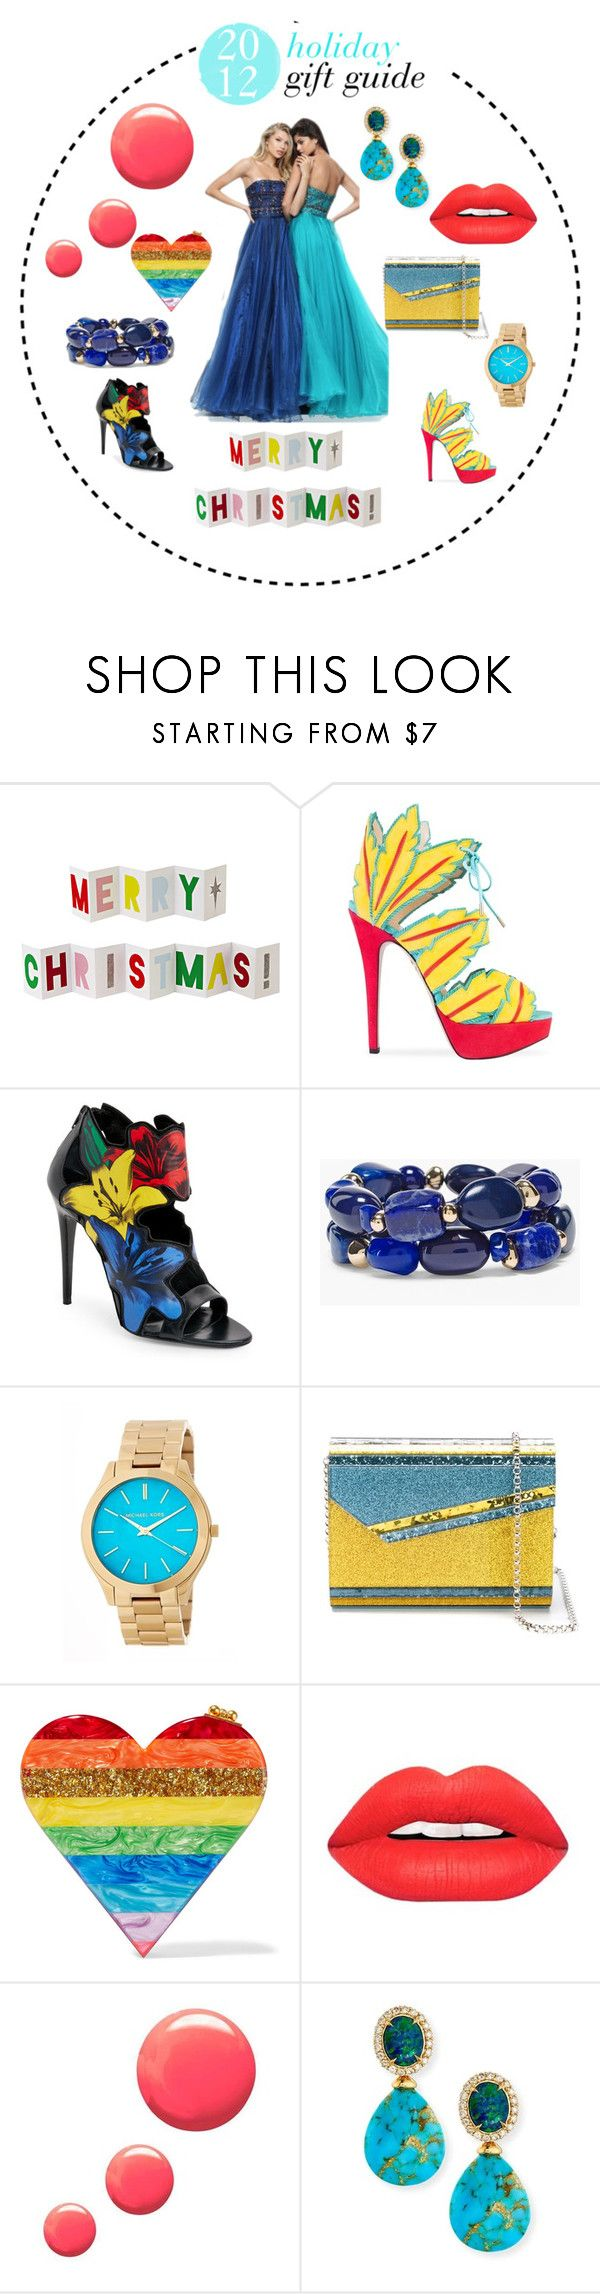 """""""holiday gift guide for yo squad"""" by jahnaeboo11 ❤ liked on Polyvore featuring Meri Meri, Charlotte Olympia, Chico's, MICHAEL Michael Kors, Jimmy Choo, Edie Parker, Topshop and Rina Limor"""